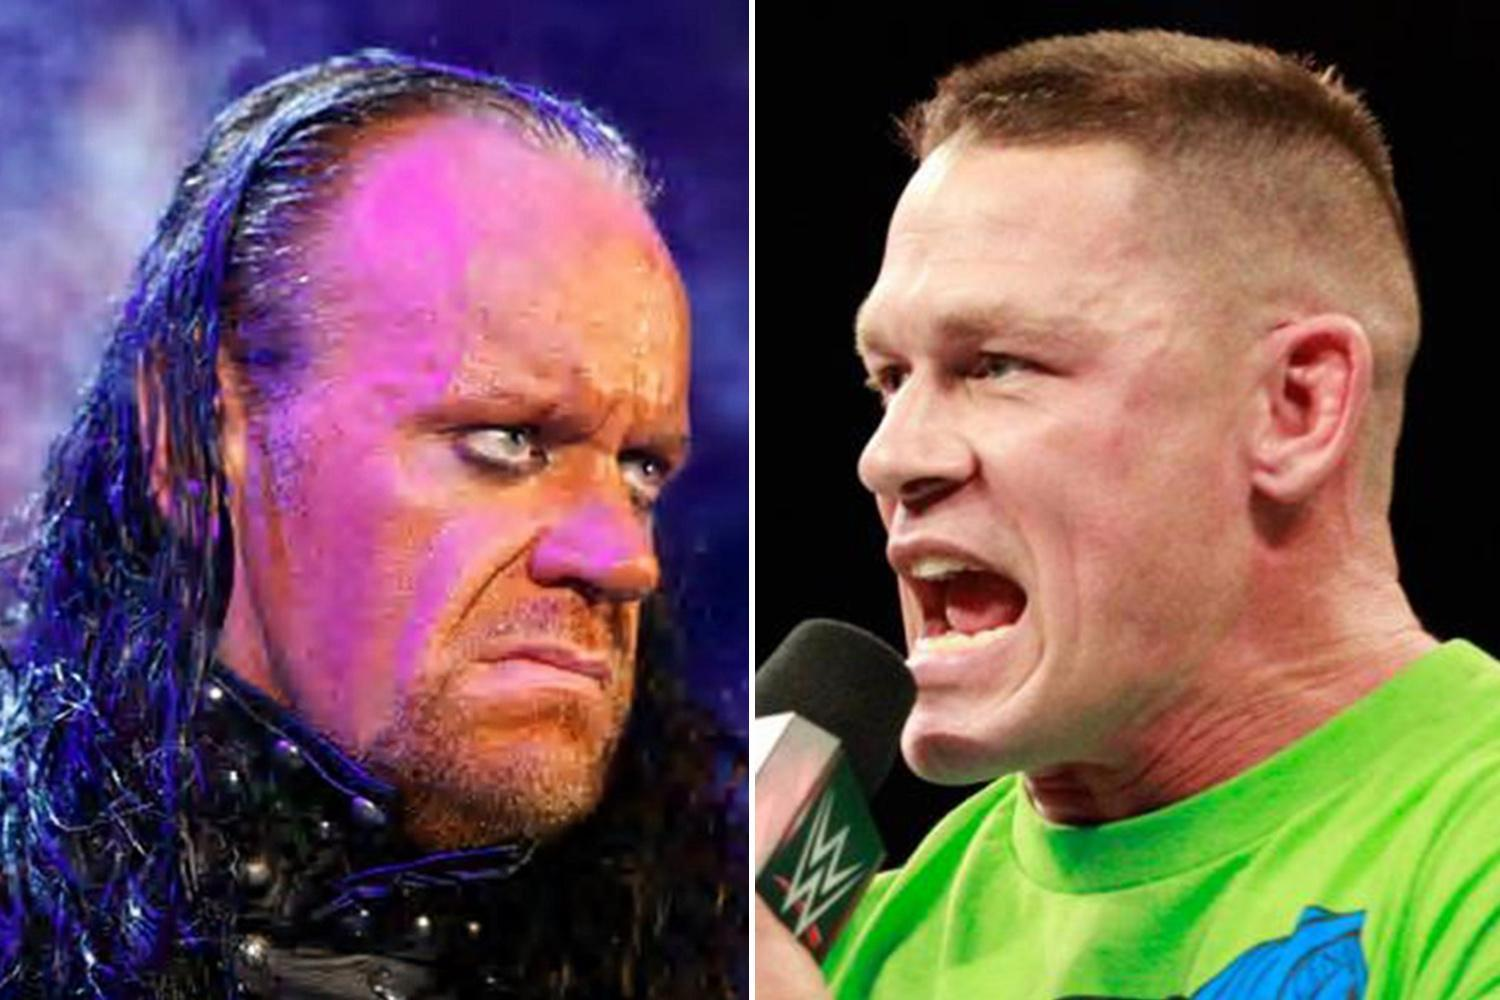 WWE legend Undertaker all but confirms WrestleMania appearances after John Cena challenges Phenom to match on Raw